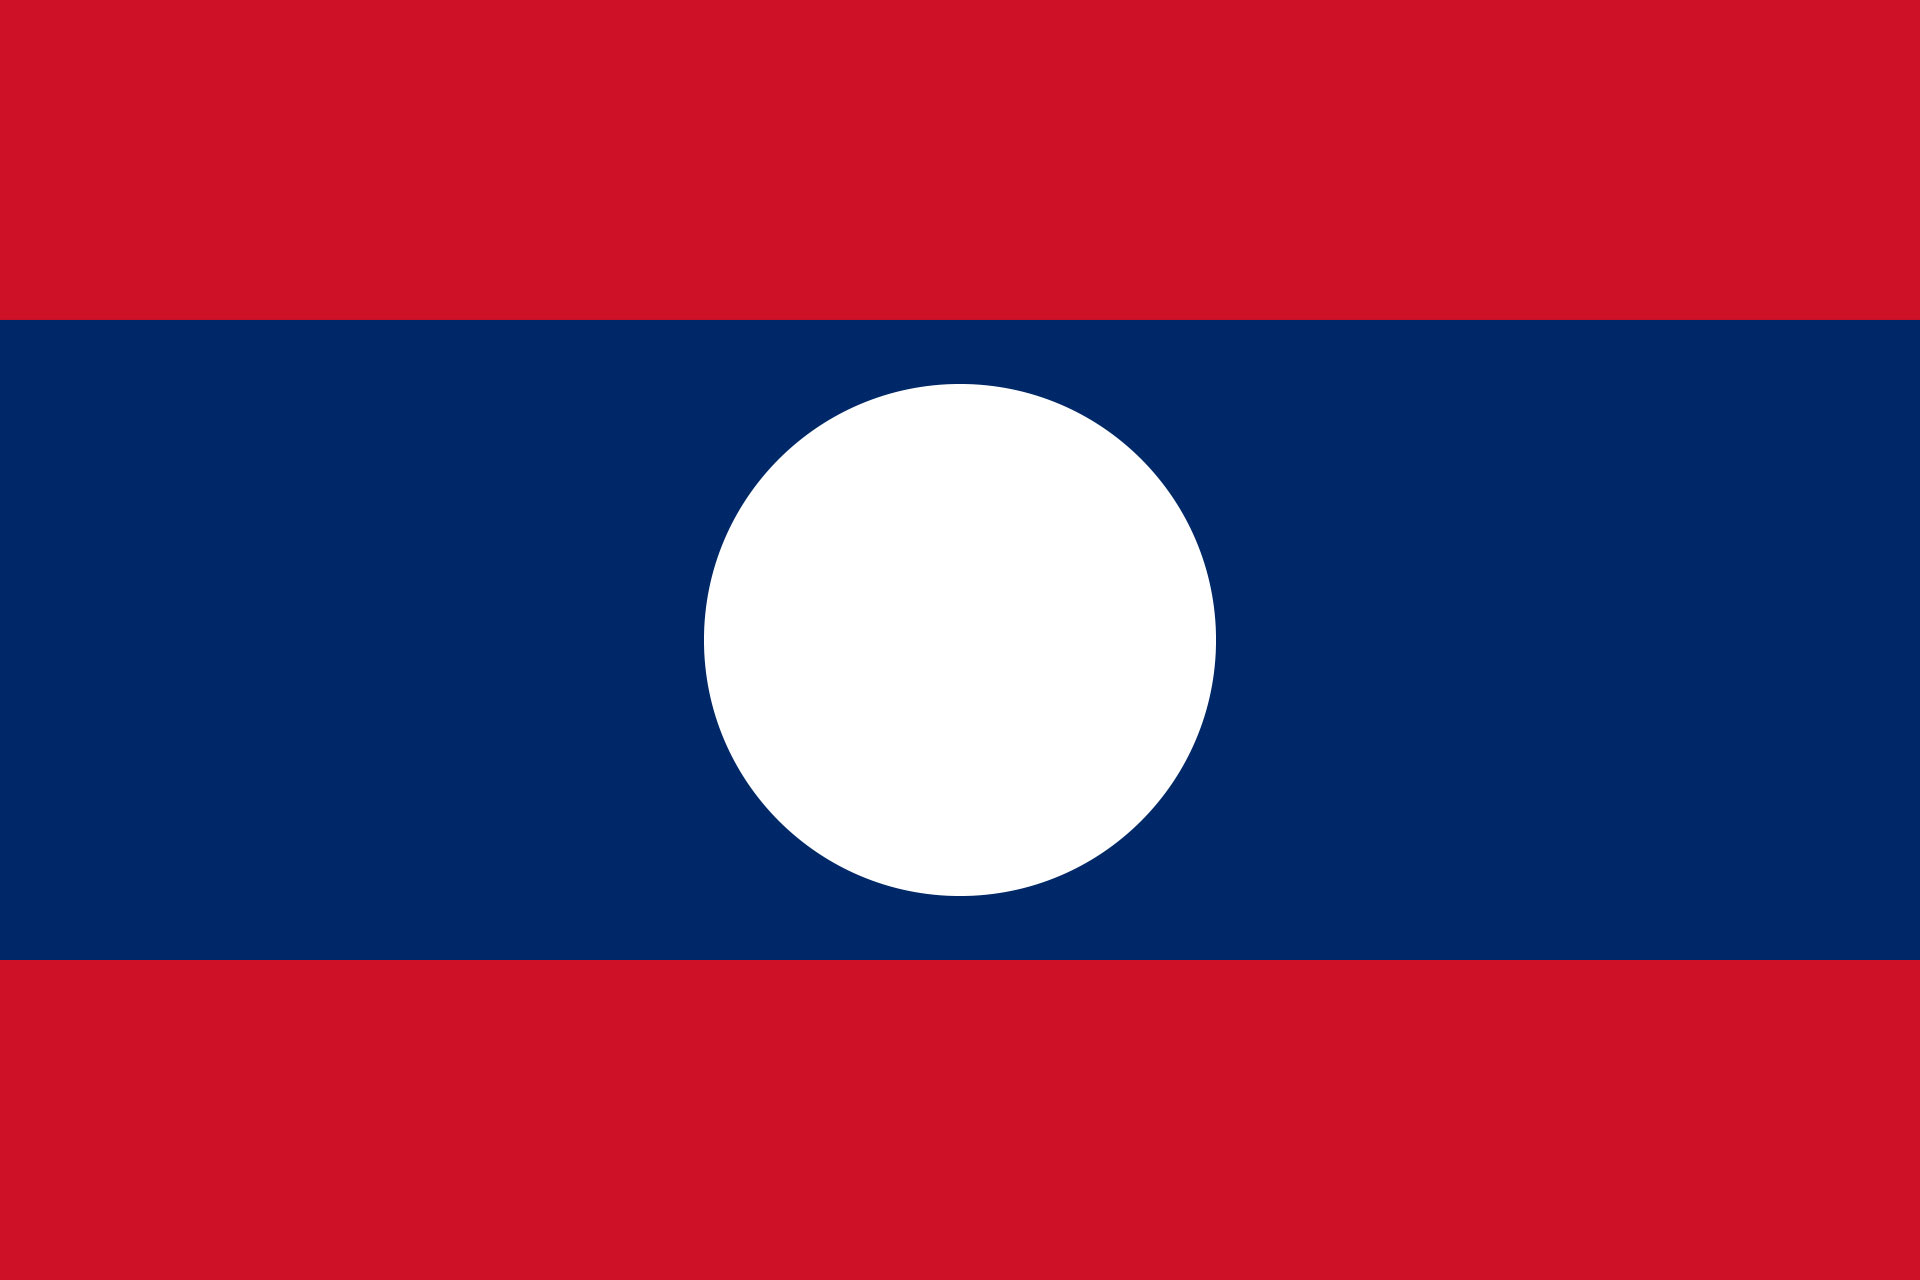 flag of laos 1975 to present